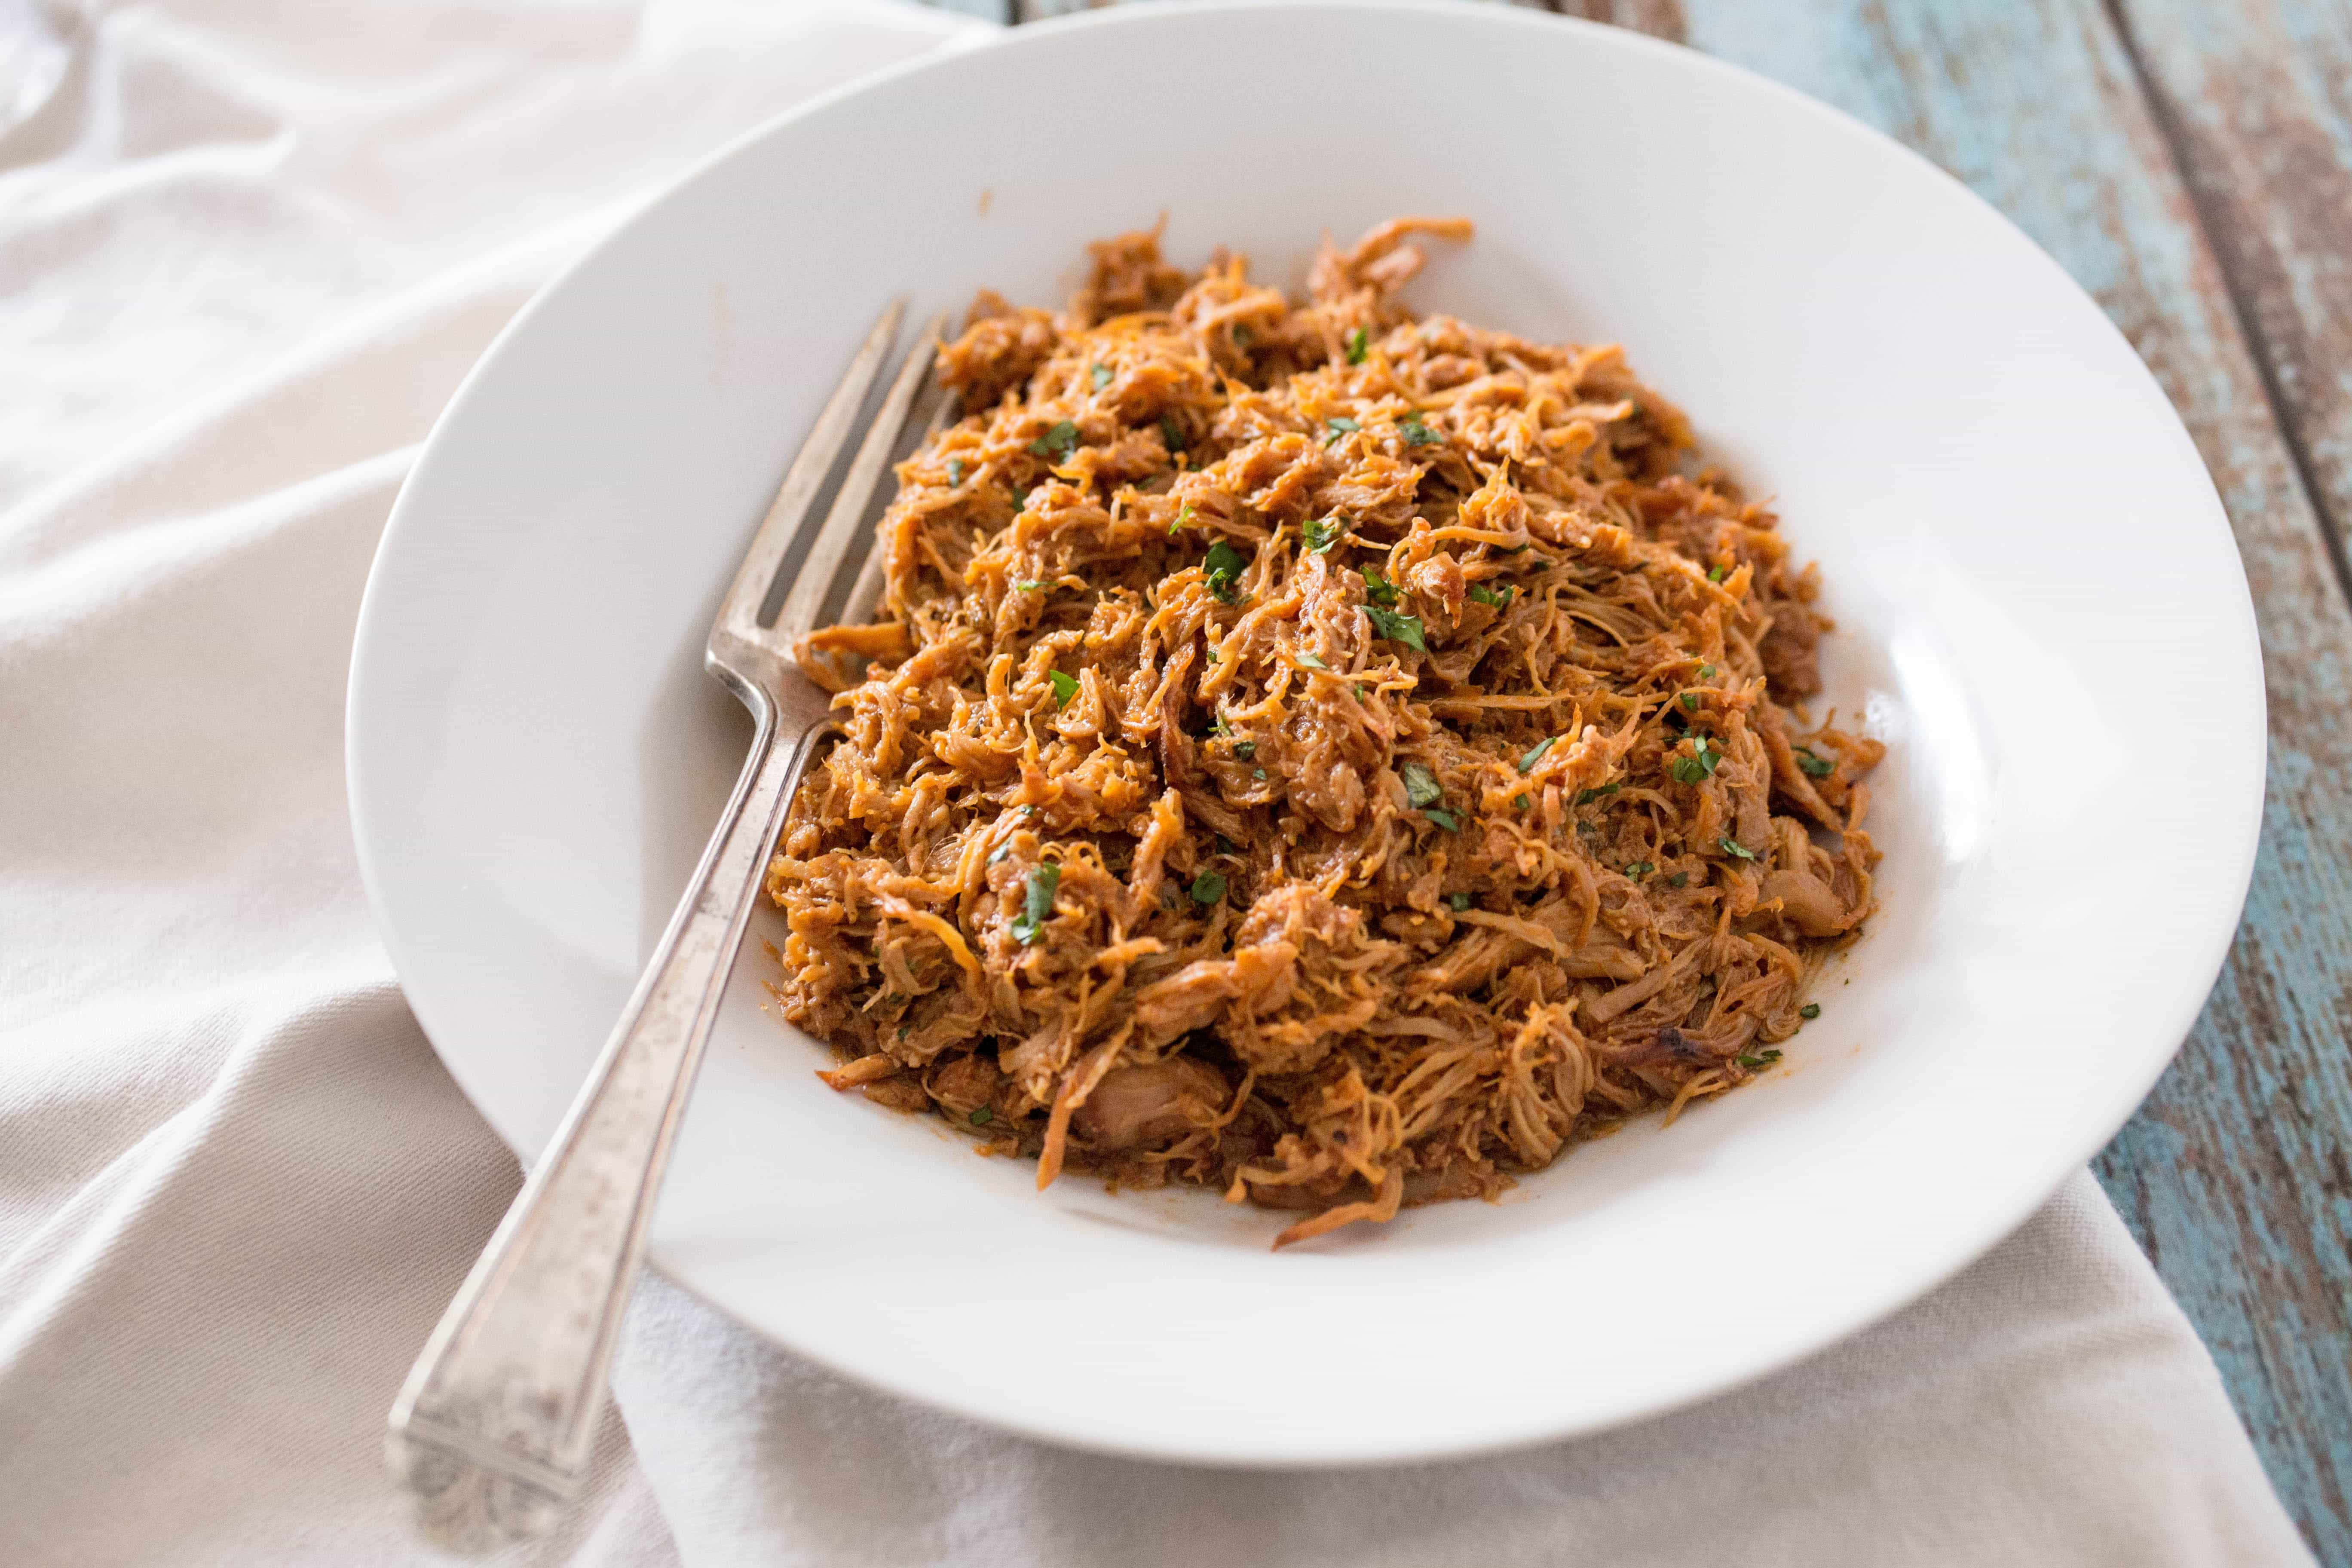 Plate of Instant Pot Shredded BBQ Chicken with a fork ready to serve